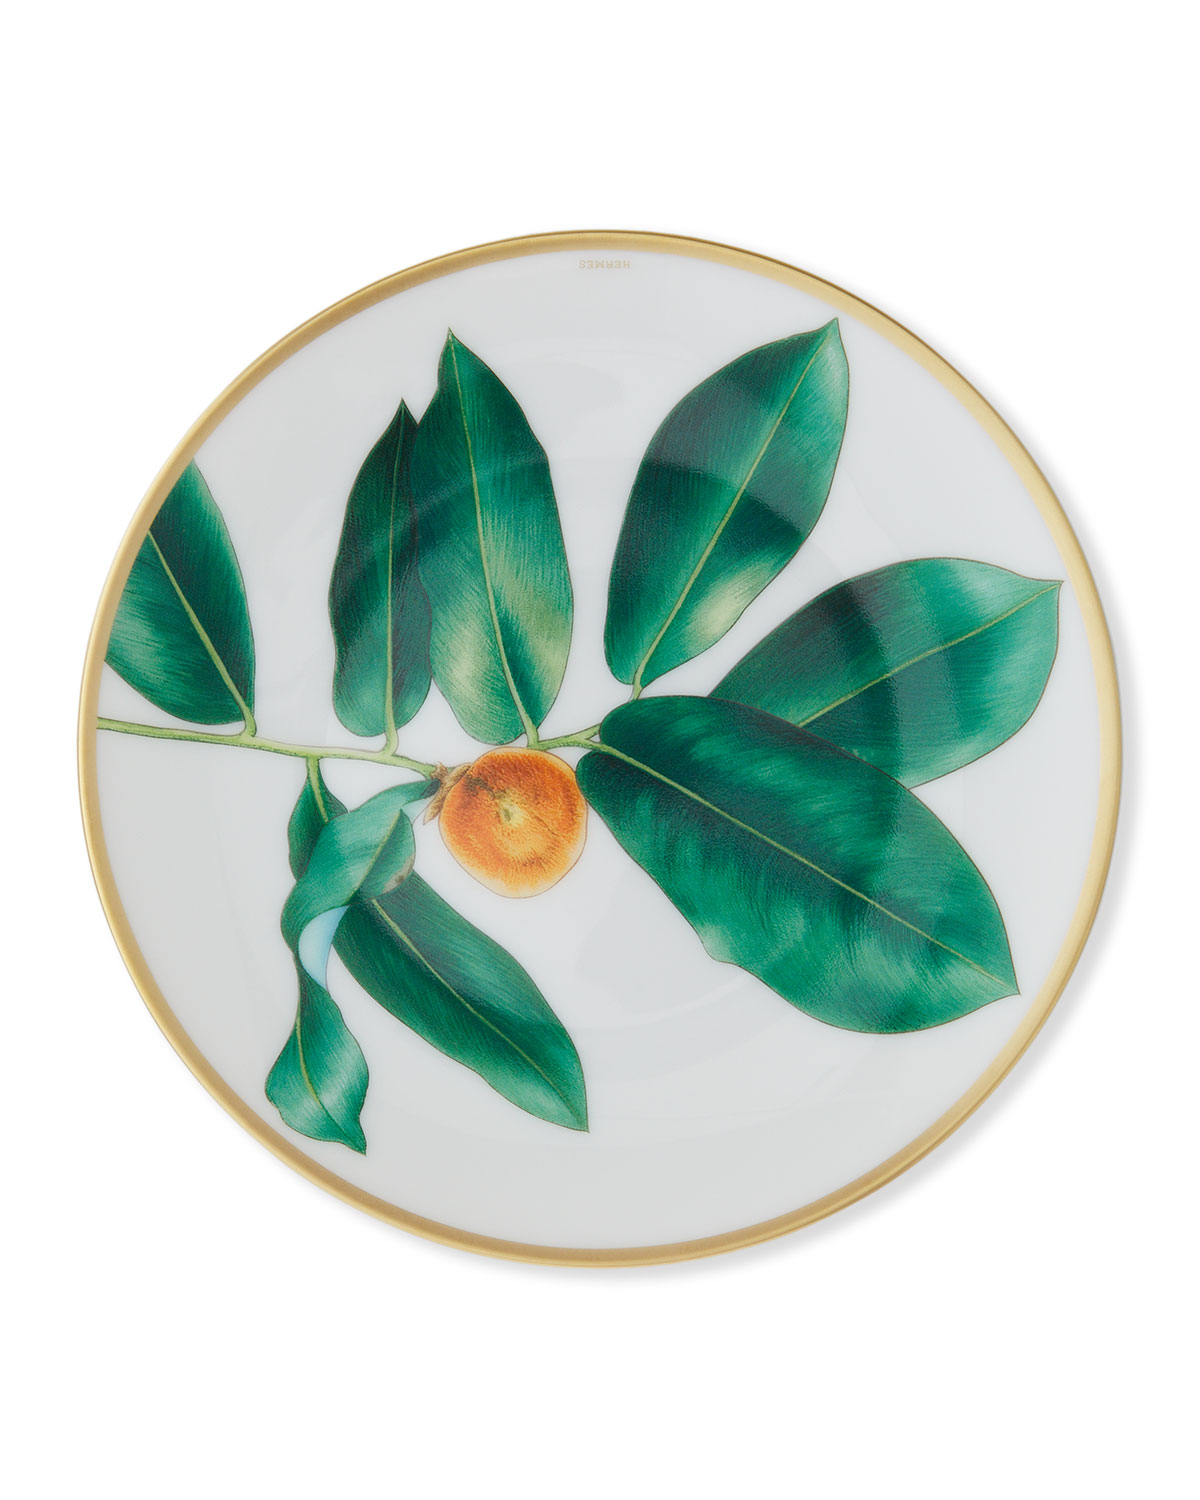 Herm S Dinnerwares PASSIFOLIA BREAD AND BUTTER PLATE N2